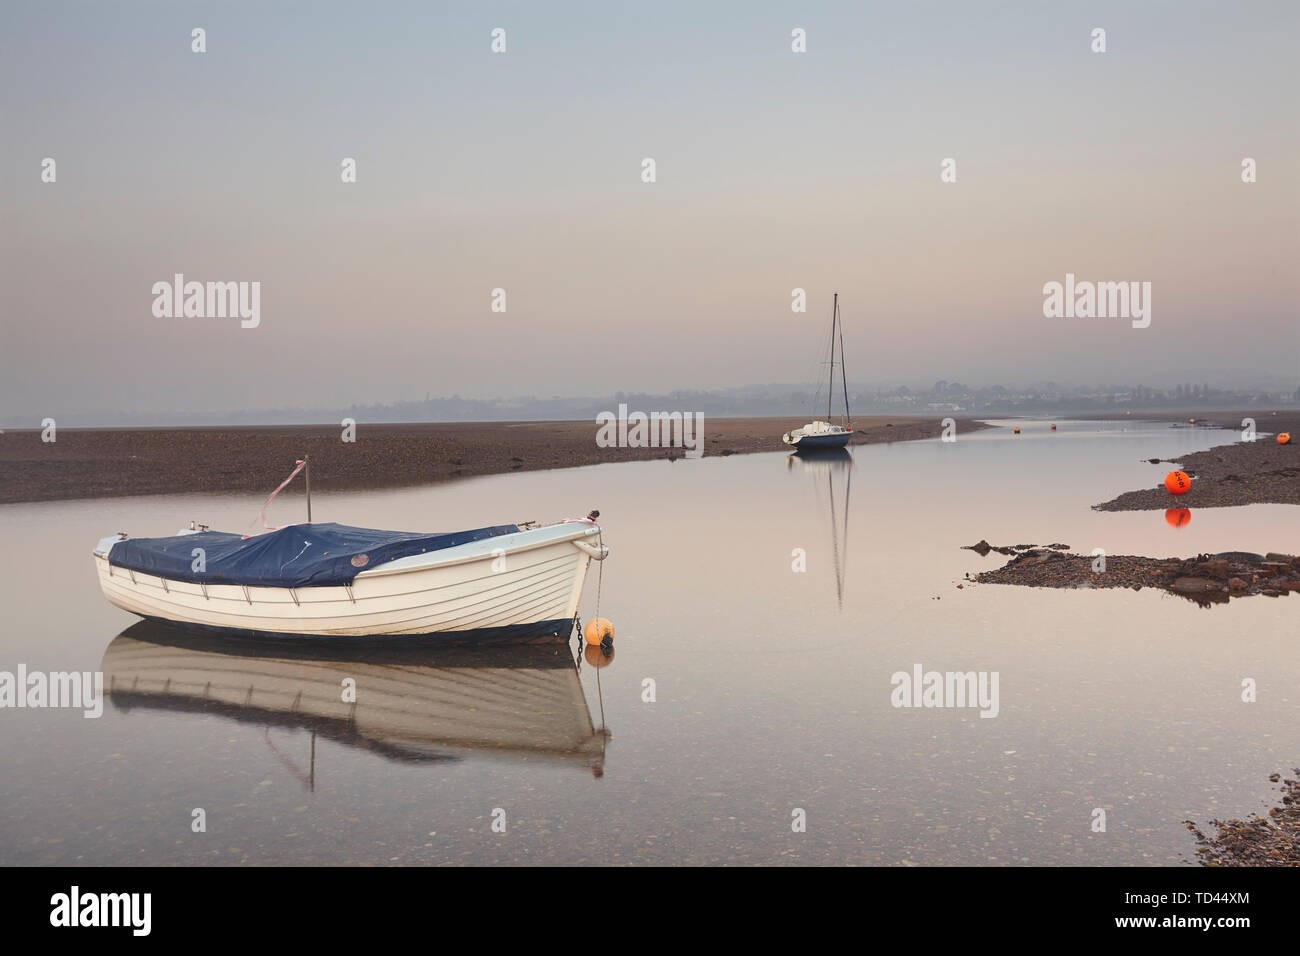 A peaceful calm evening view of the estuary of the River Exe at low tide, Exmouth, Devon, England, United Kingdom, Europe - Stock Image